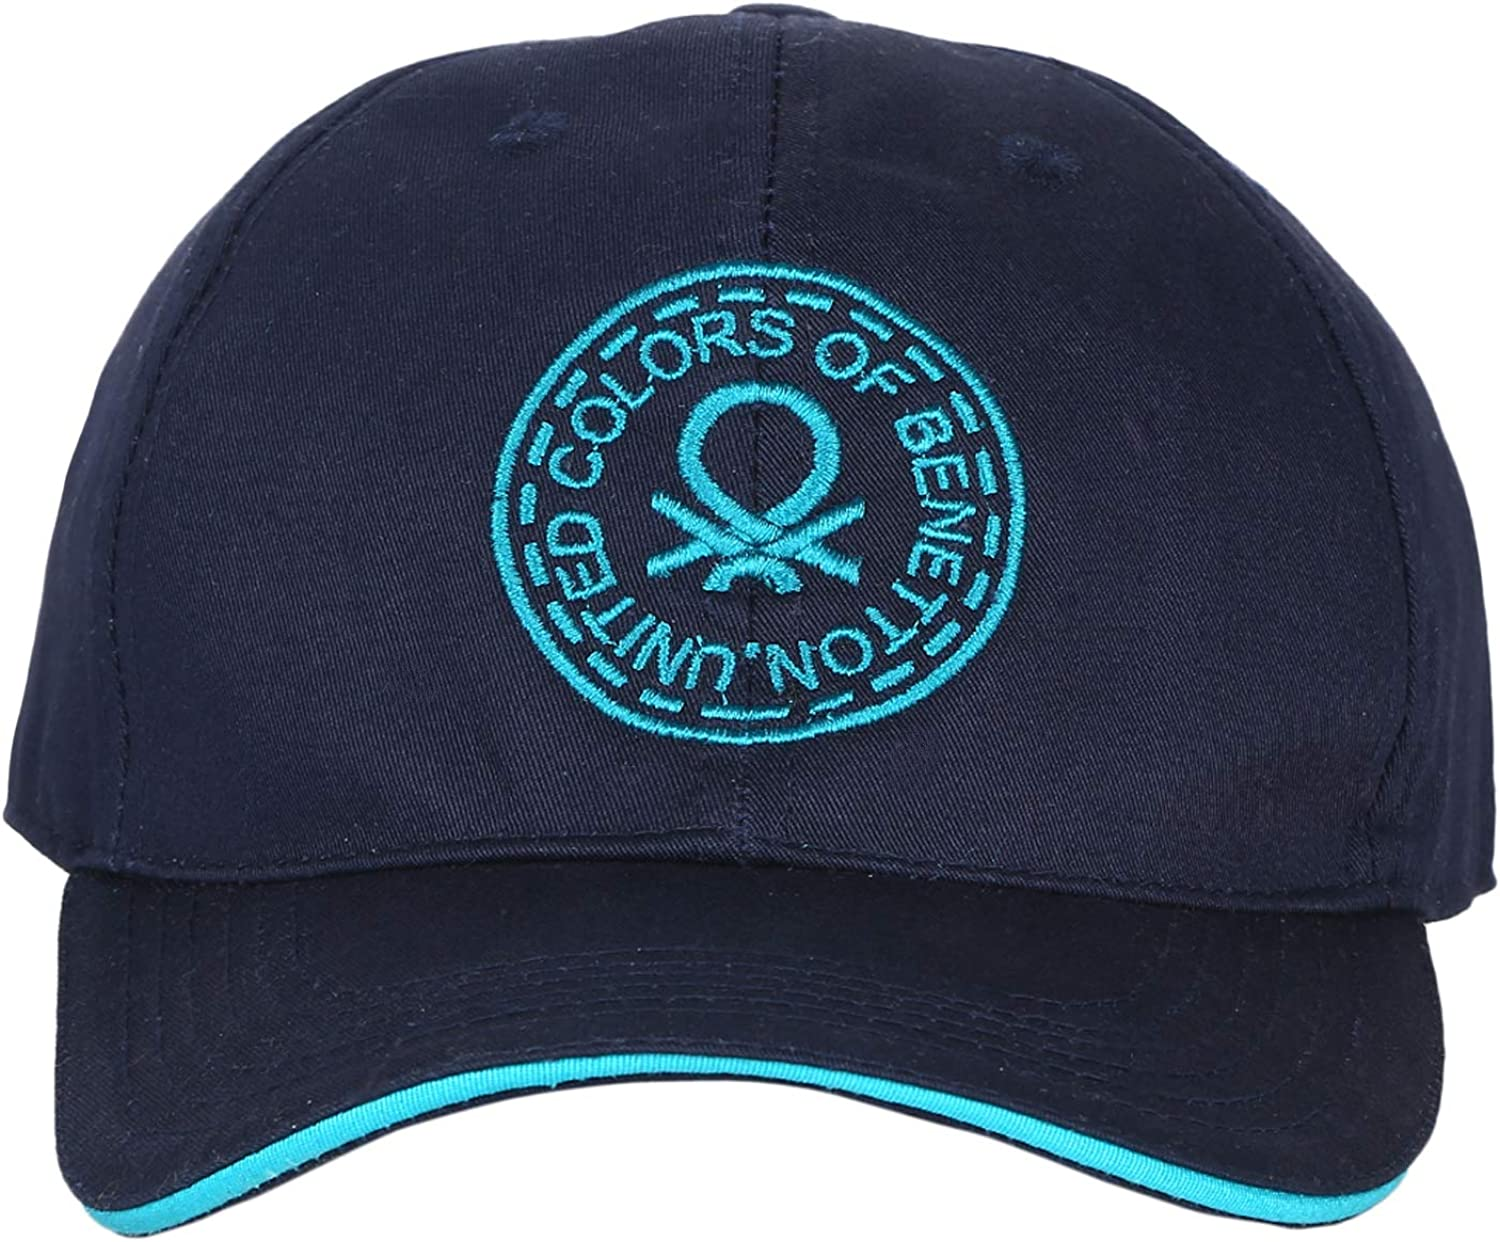 United Colors of Benetton Men's Cap flat 80% off at Amazon